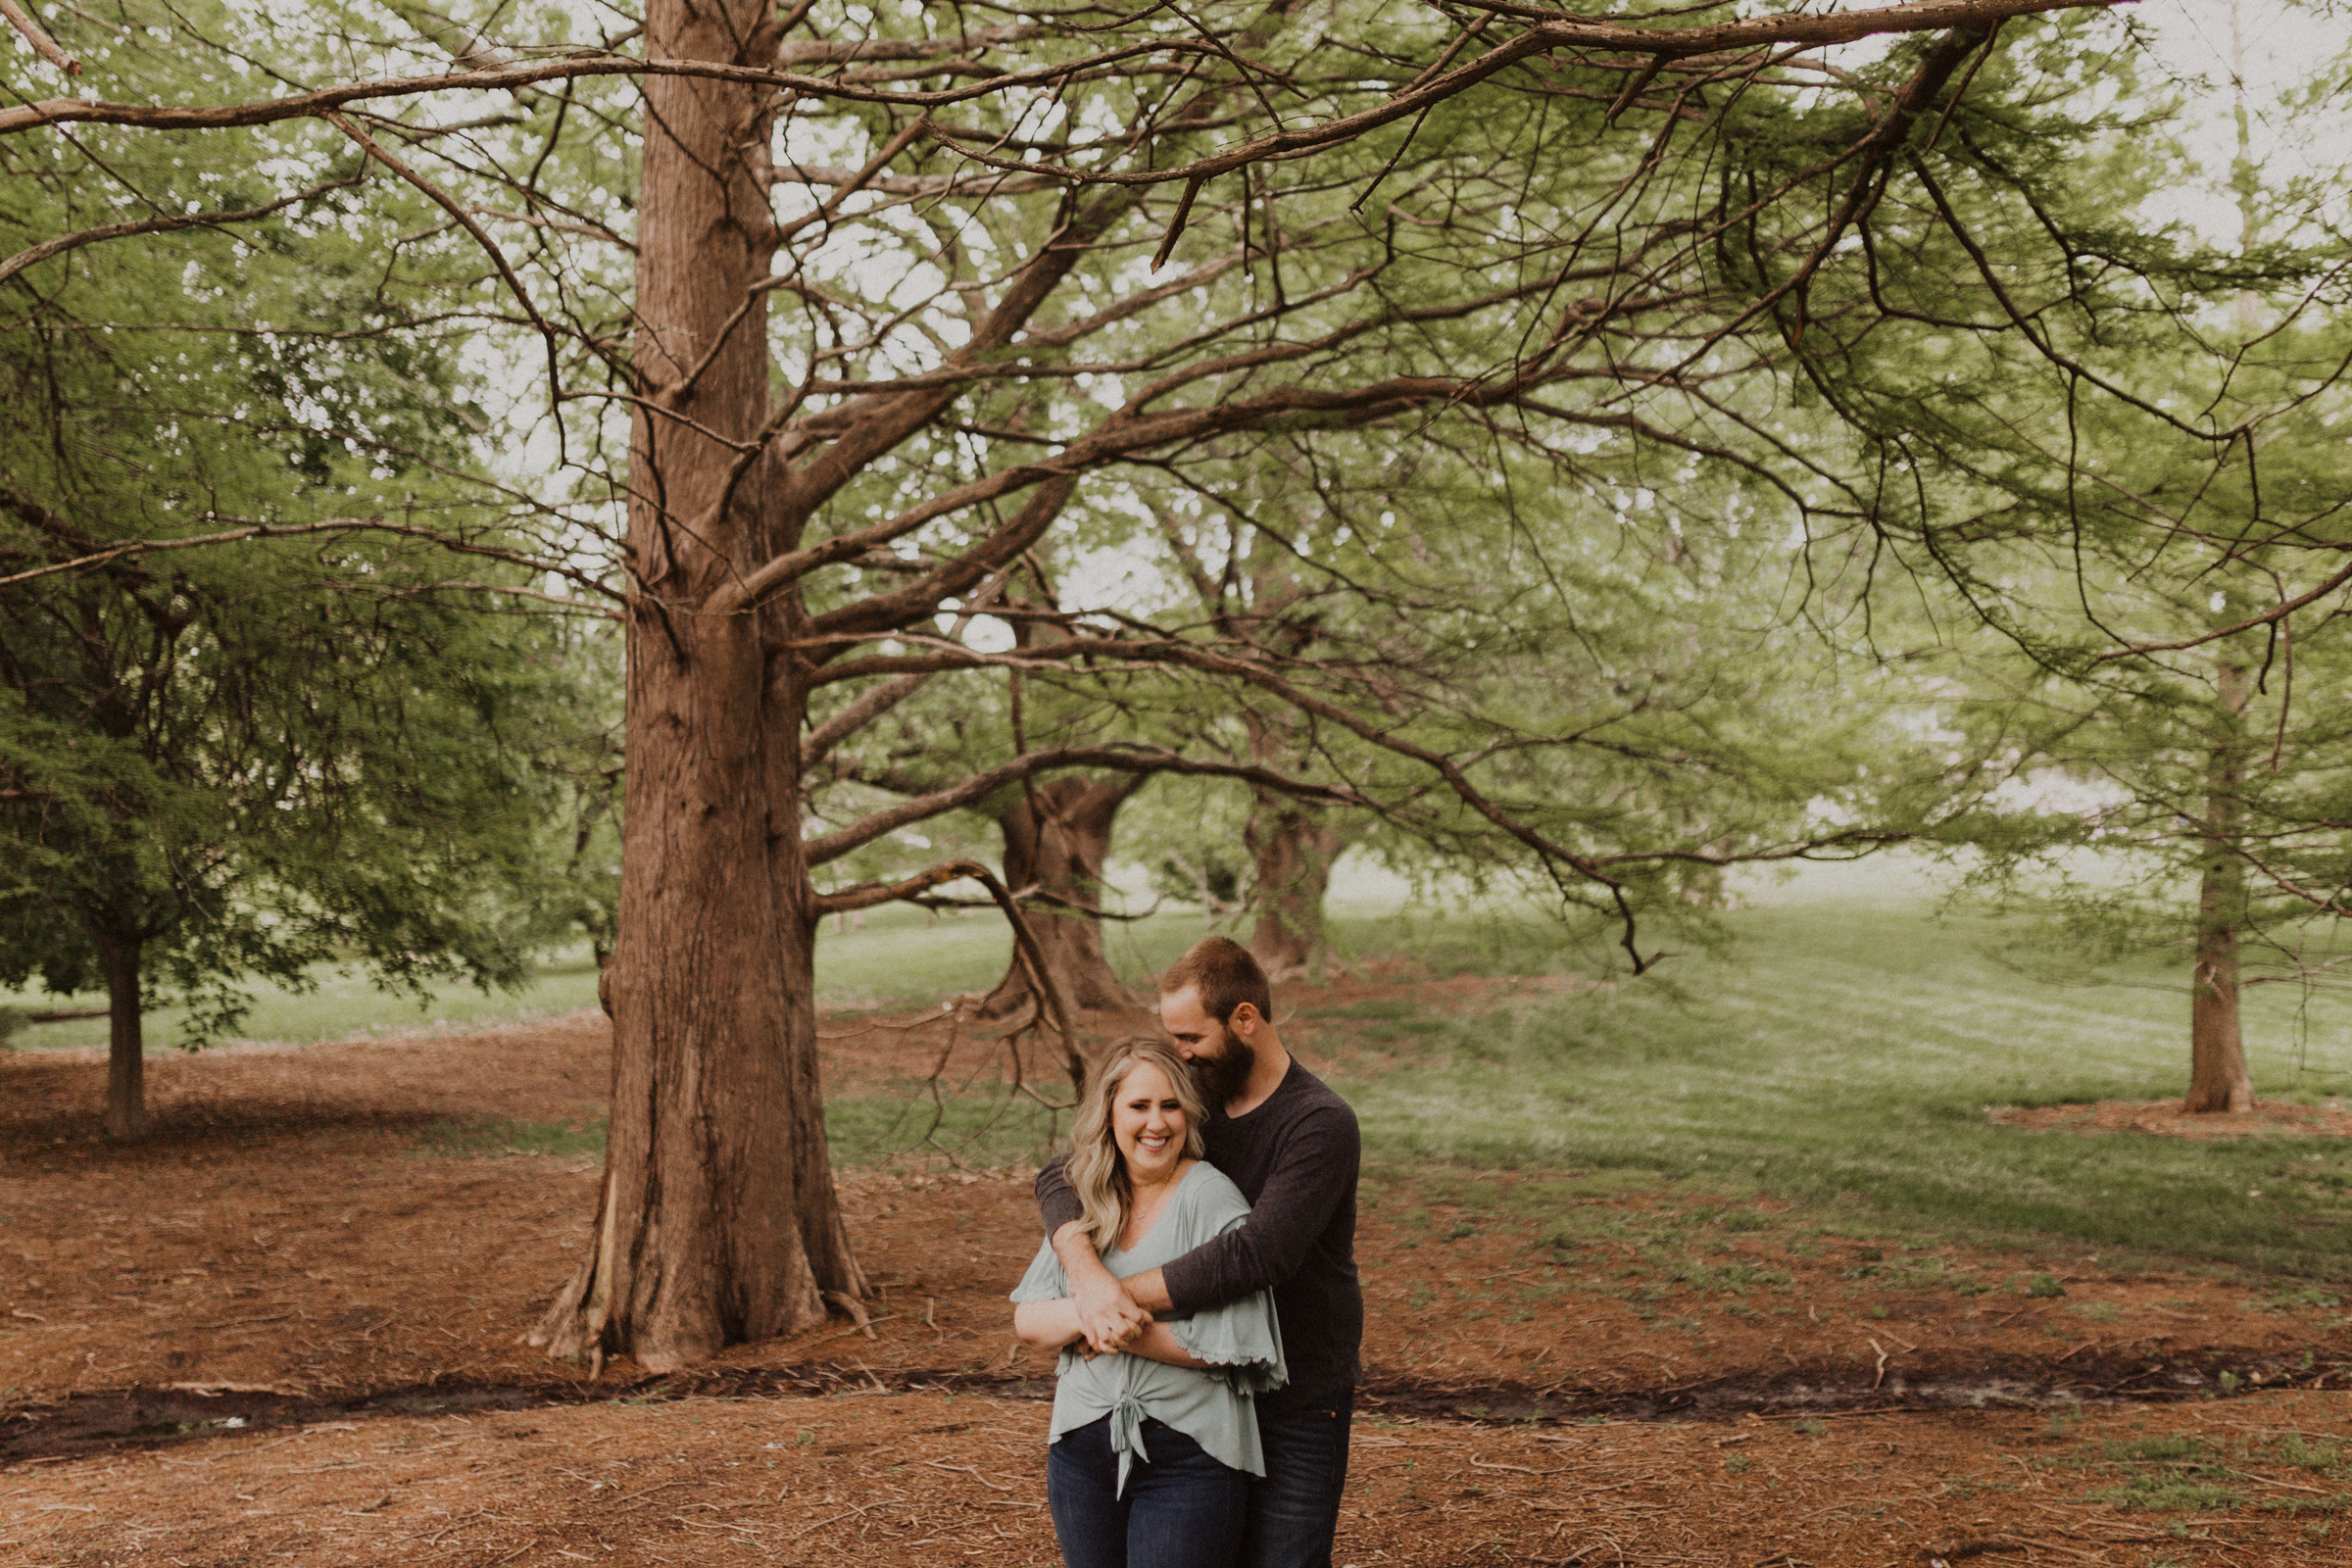 alyssa barletter photography kansas city liberty memorial loose park engagement session photographer-5.jpg